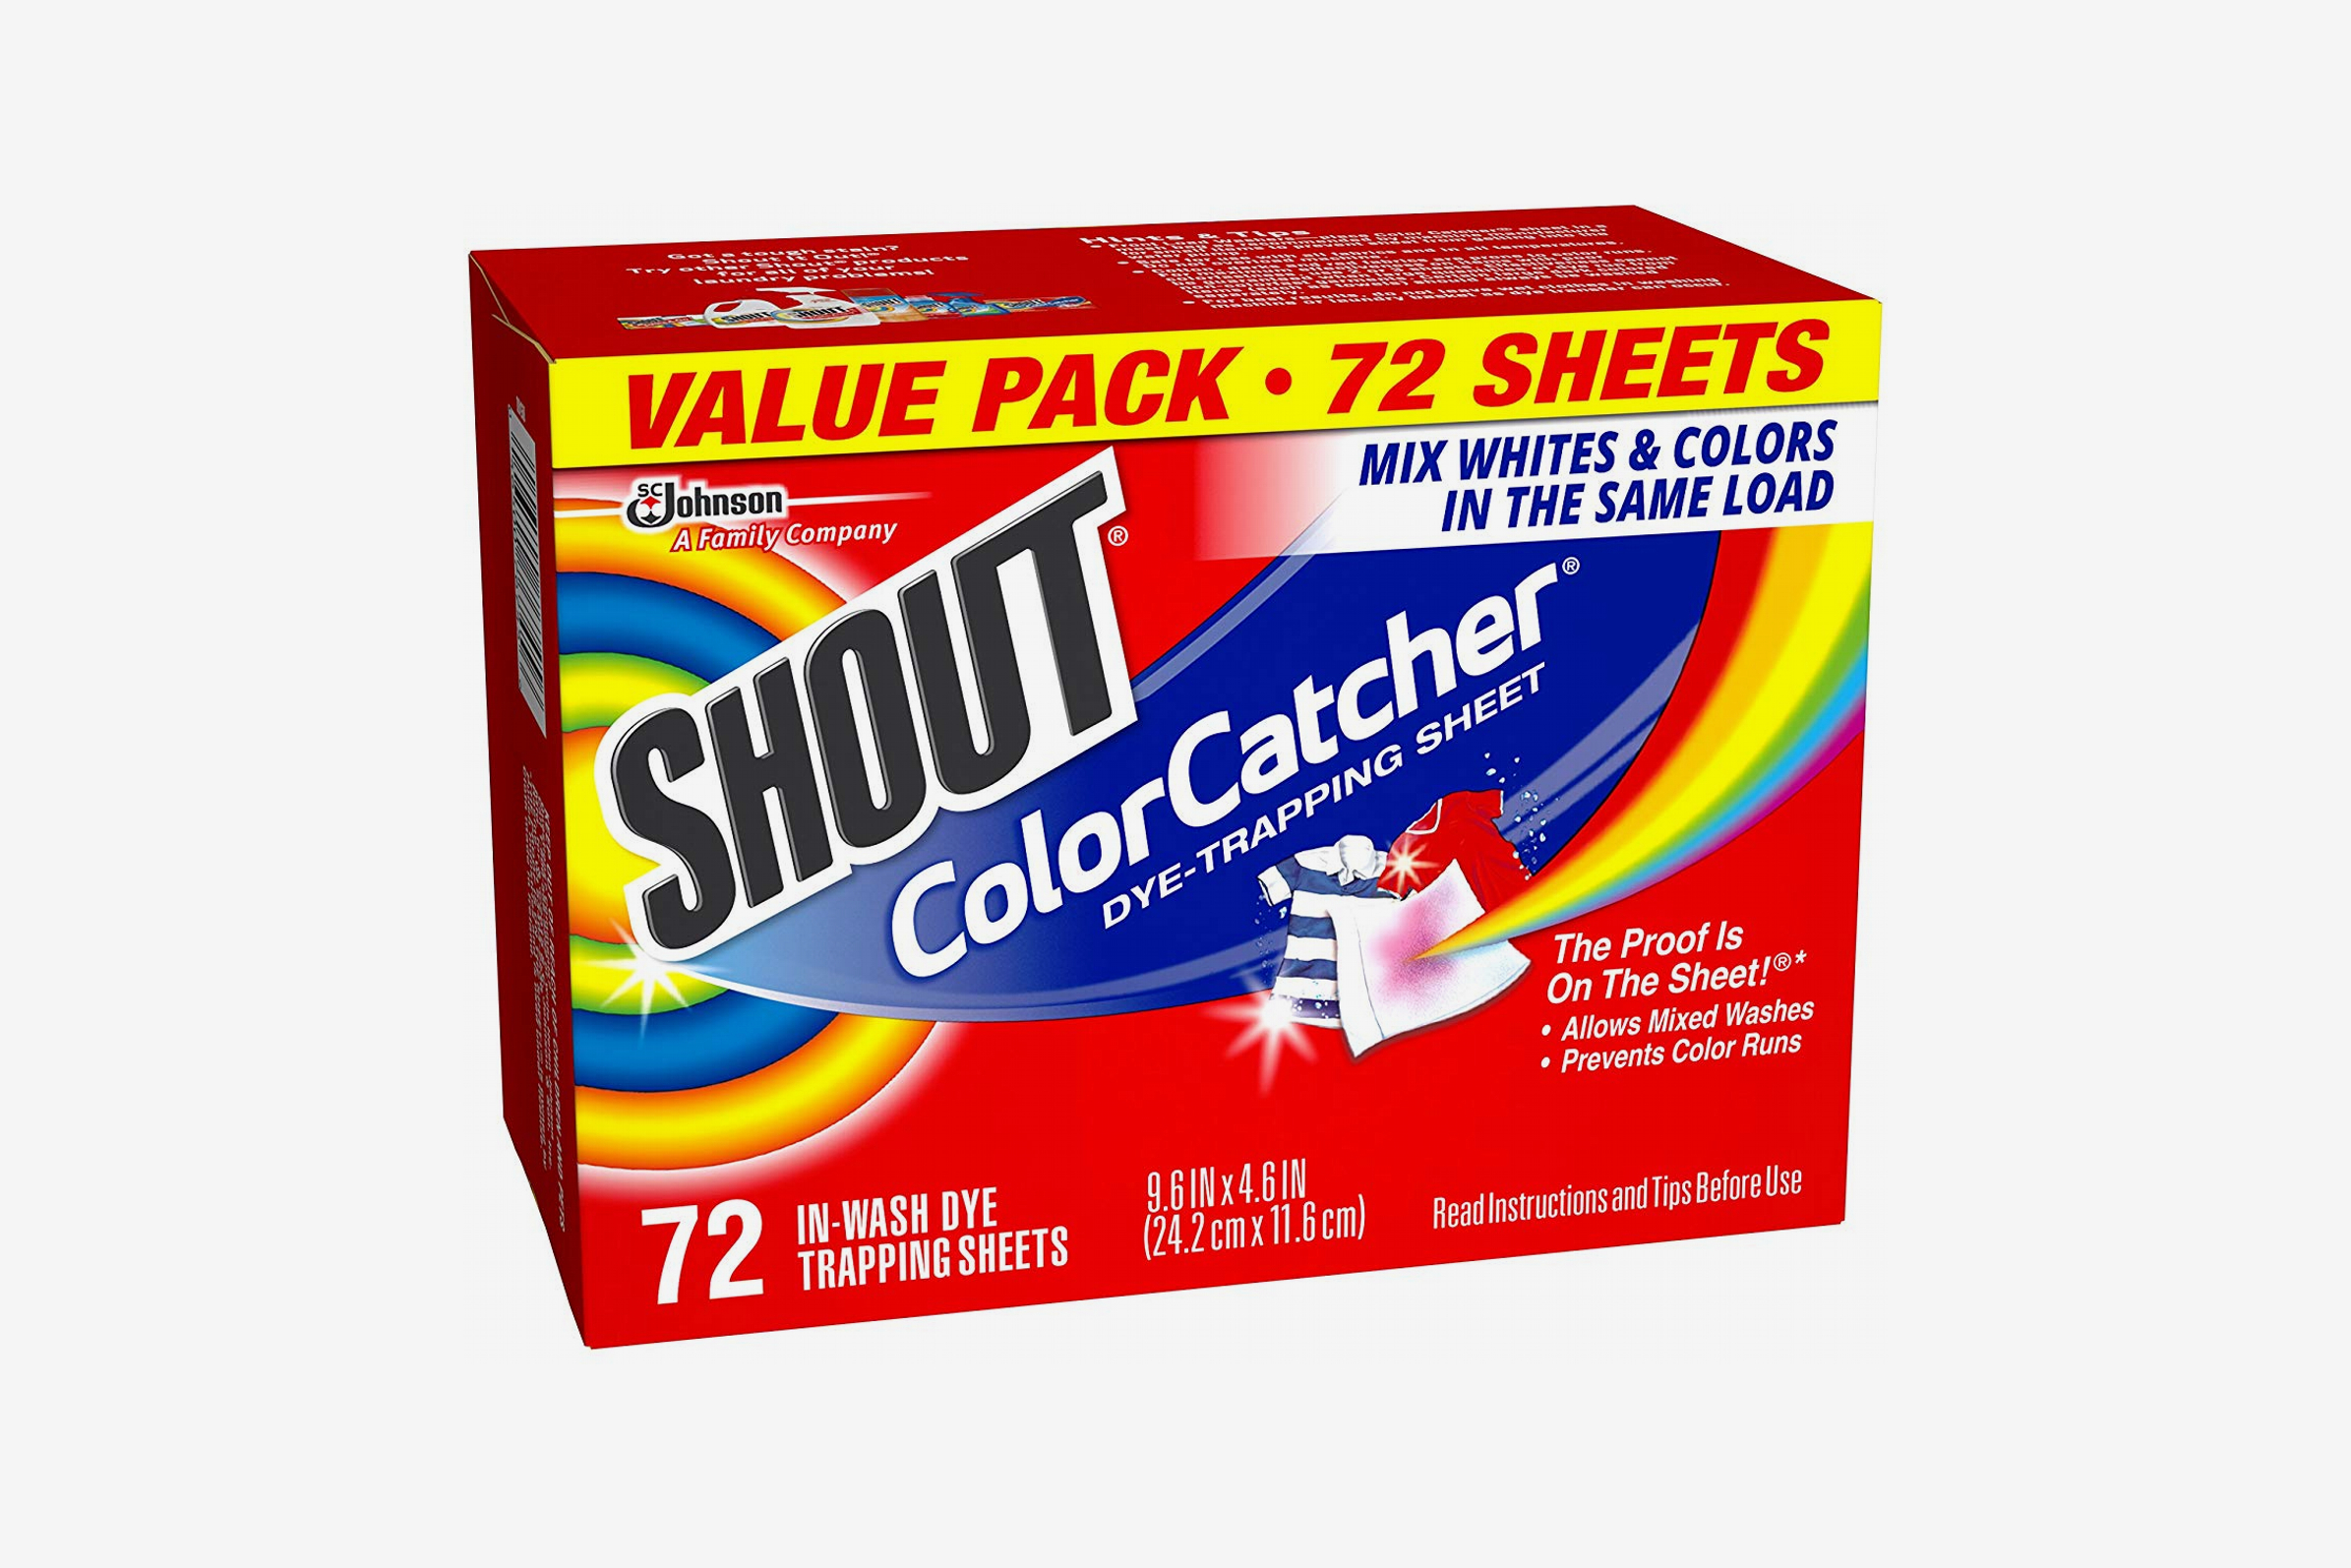 Shout Color Catcher Dye Trapping Sheets